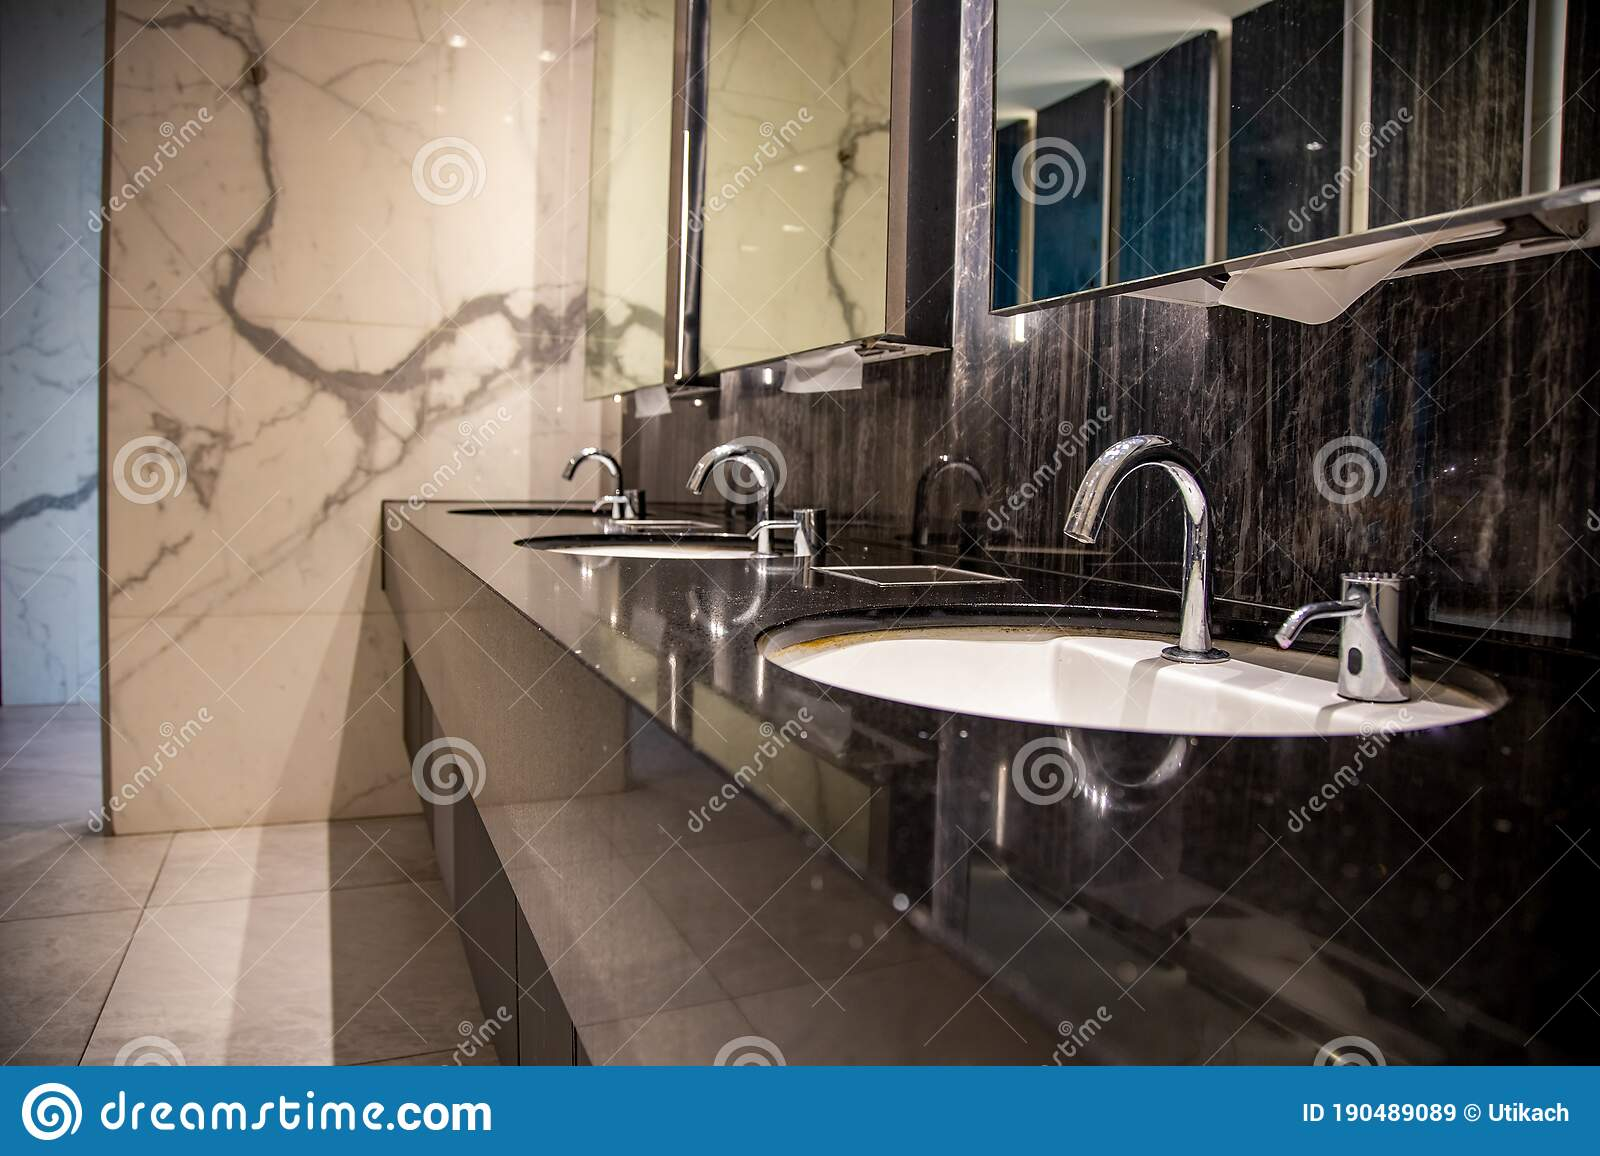 1 533 Luxury Hotel Public Toilet Photos Free Royalty Free Stock Photos From Dreamstime